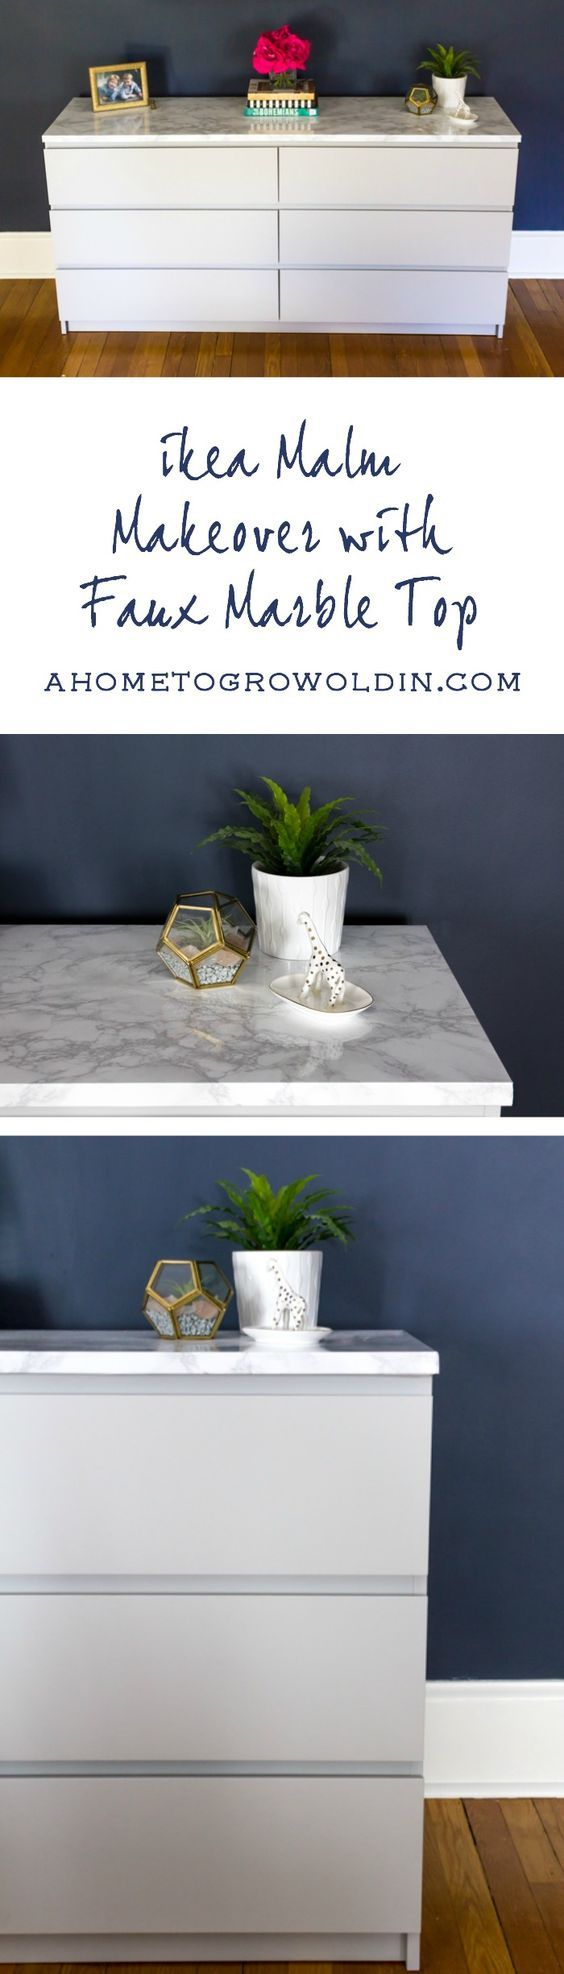 An easy Ikea hack to update your Malm dresser! Great tips on painting laminate furniture as well as how to apply a faux marble top. Check out the before and after pictures of this DIY project!